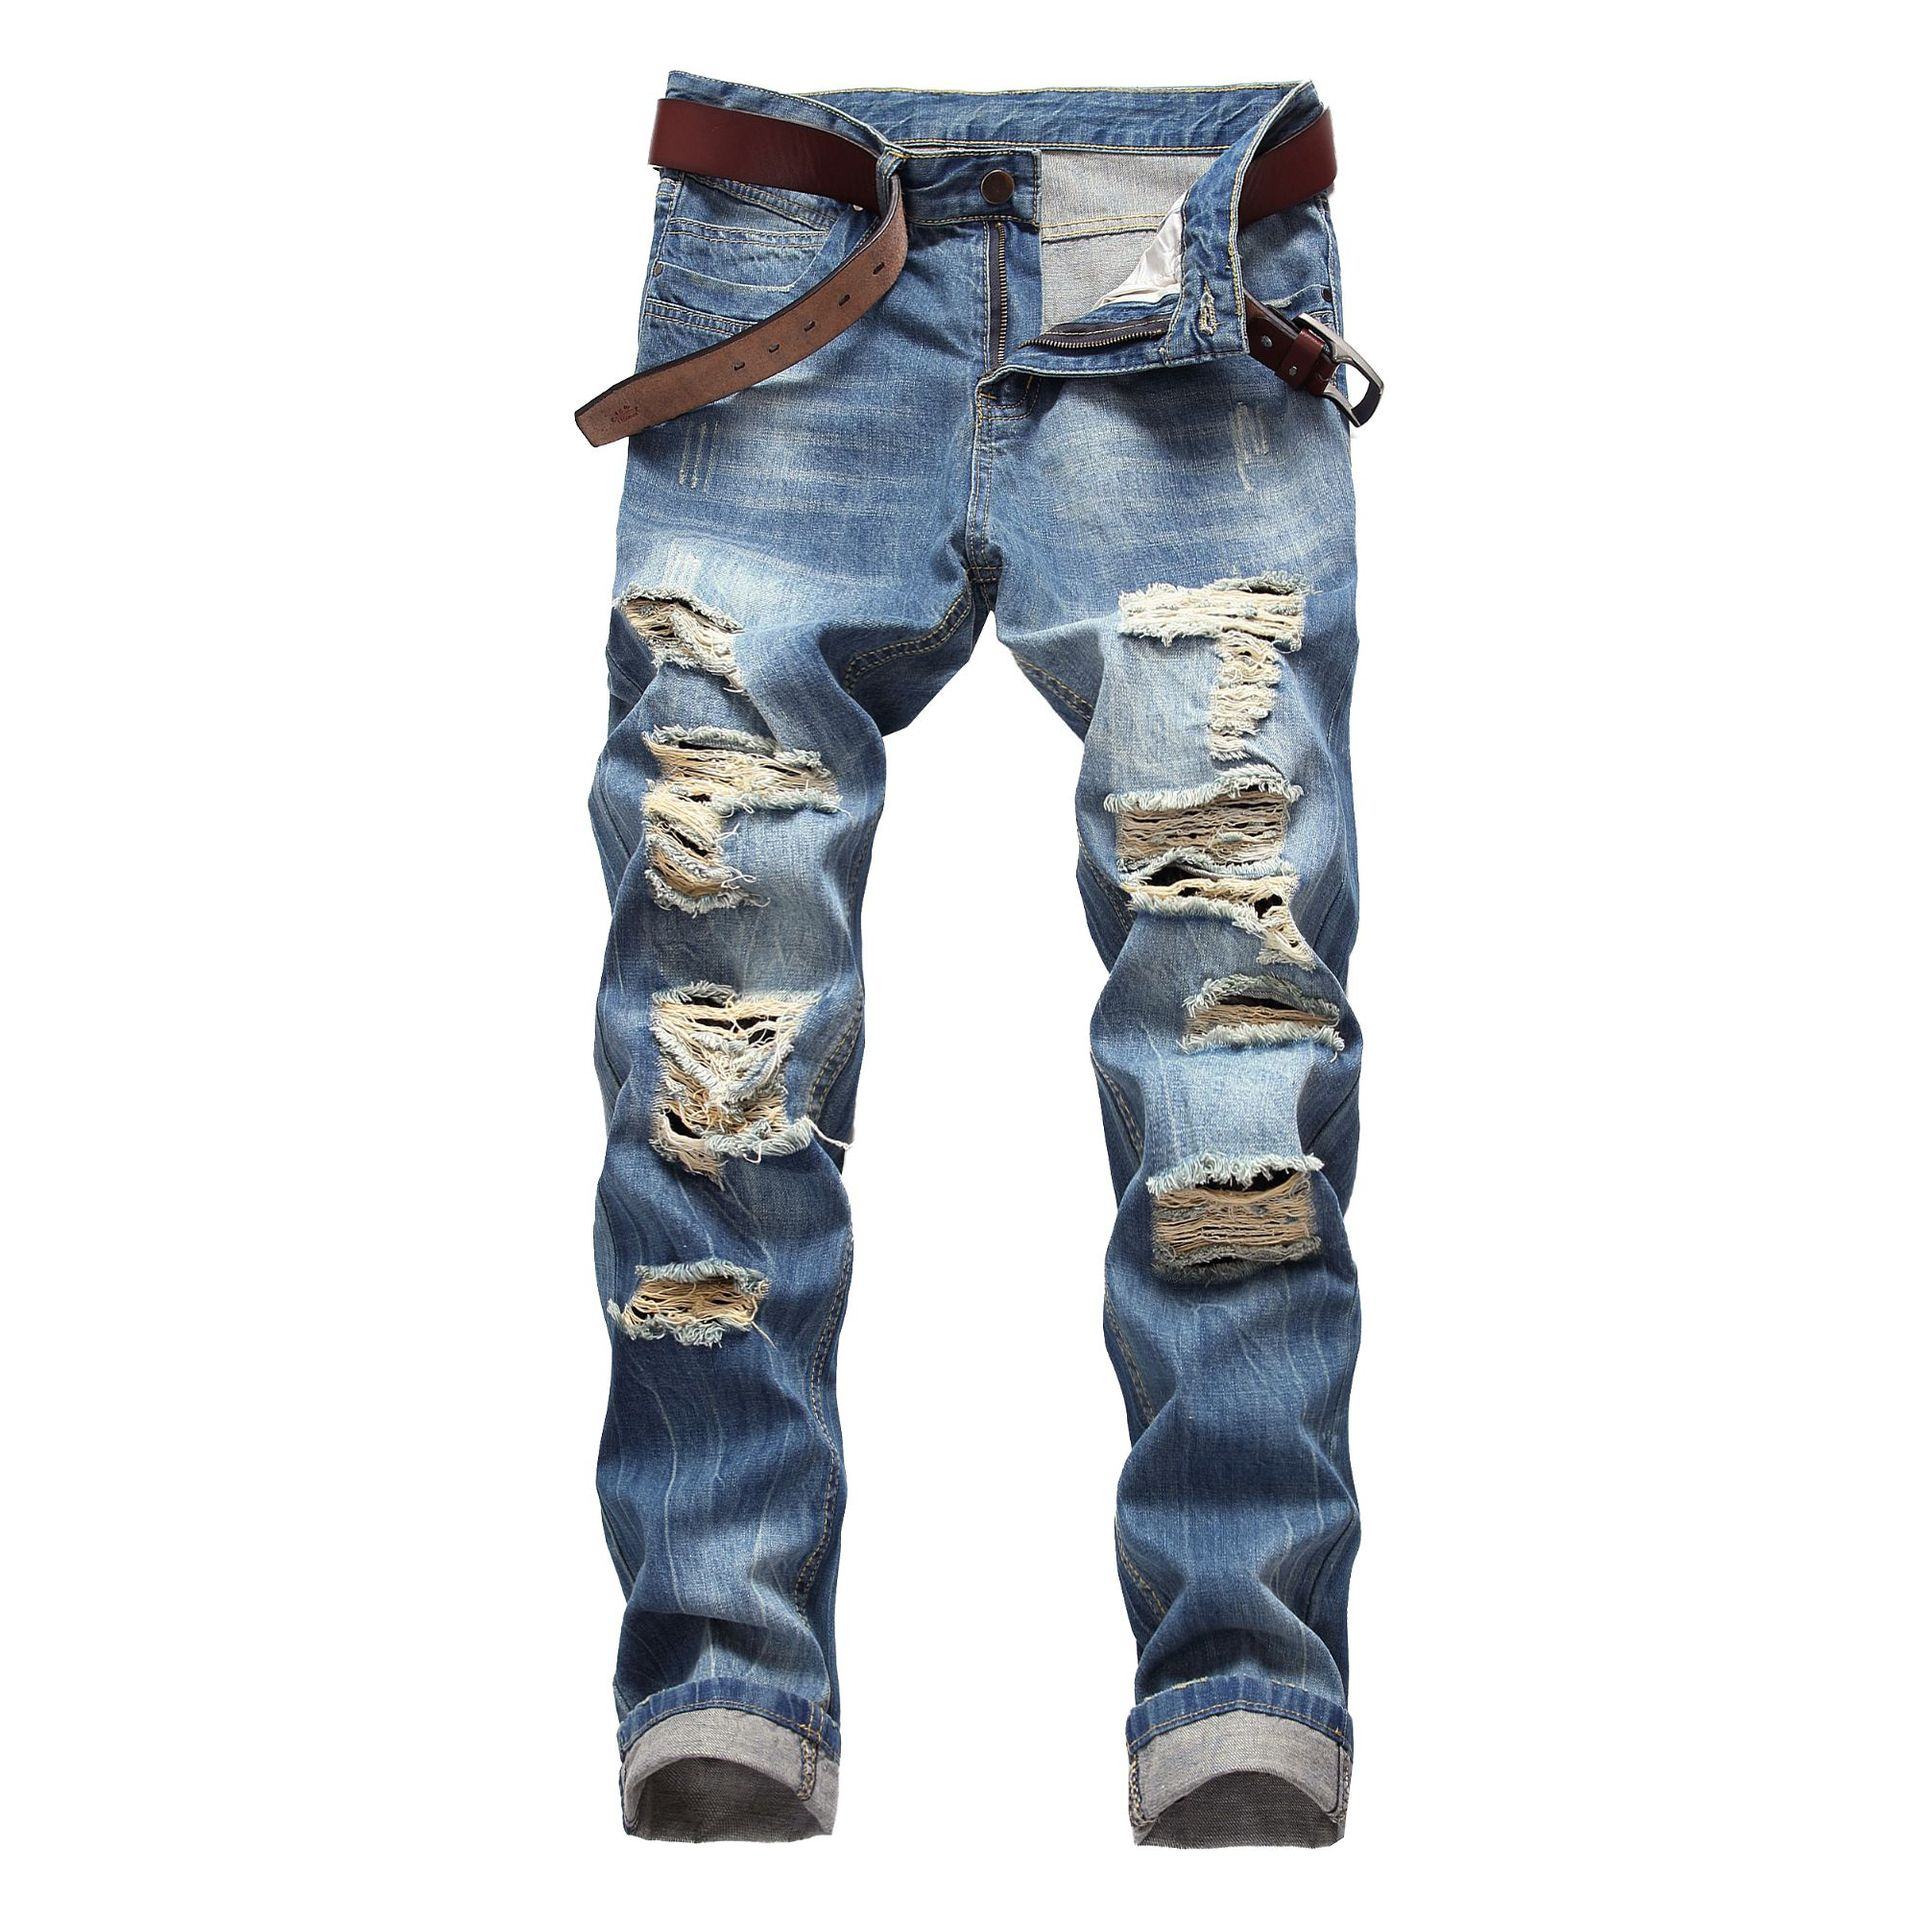 LIYT Mens Ripped Destroyed Straight Fit Washed Patchwork Patches Denim Jeans Trousers